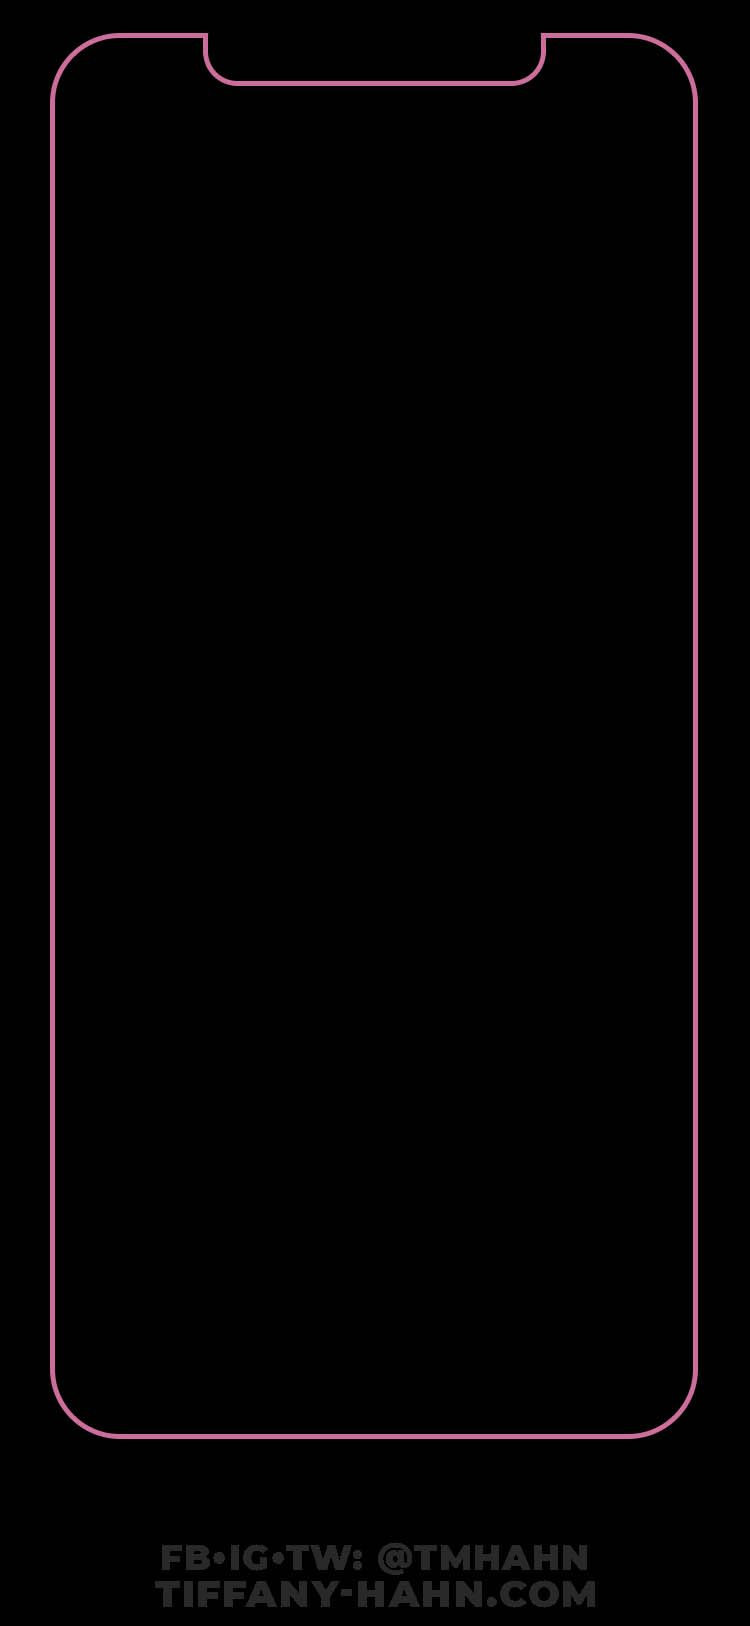 iPhone Outline Wallpapers - Wallpaper Cave